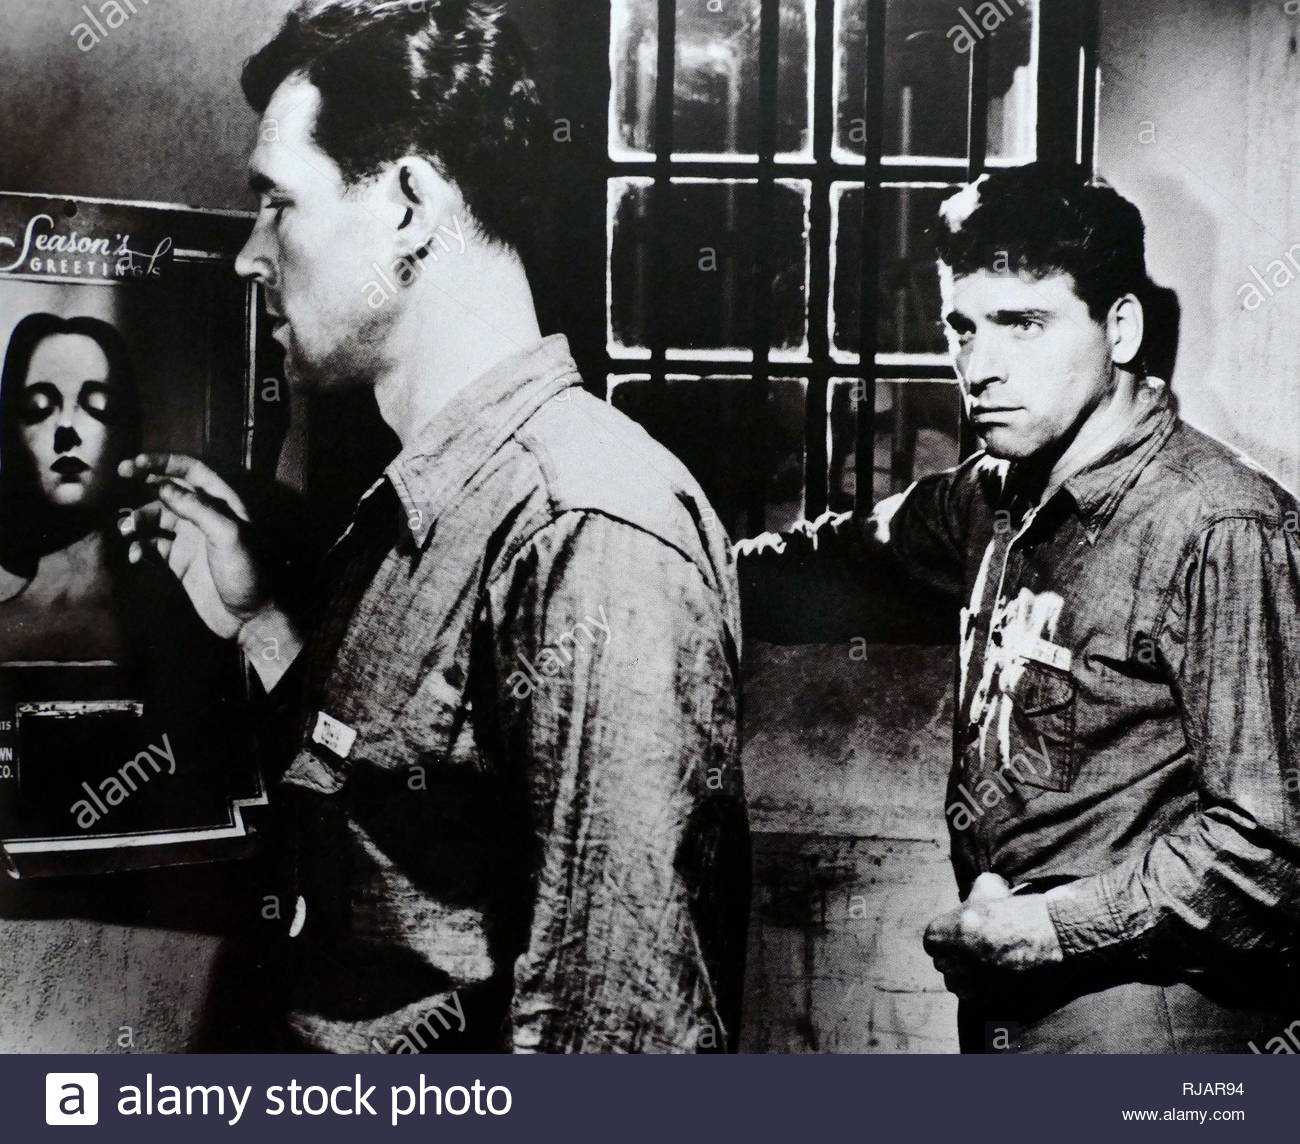 Birdman of Alcatraz is a 1962 biographical drama film starring Burt Lancaster and directed by John Frankenheimer. Robert Franklin Stroud (1890 - 1963), known as the 'Birdman of Alcatraz', was an American federal prisoner who became a respected ornithologist. Burt Lancaster (1913 - 1994) was an American film actor. - Stock Image